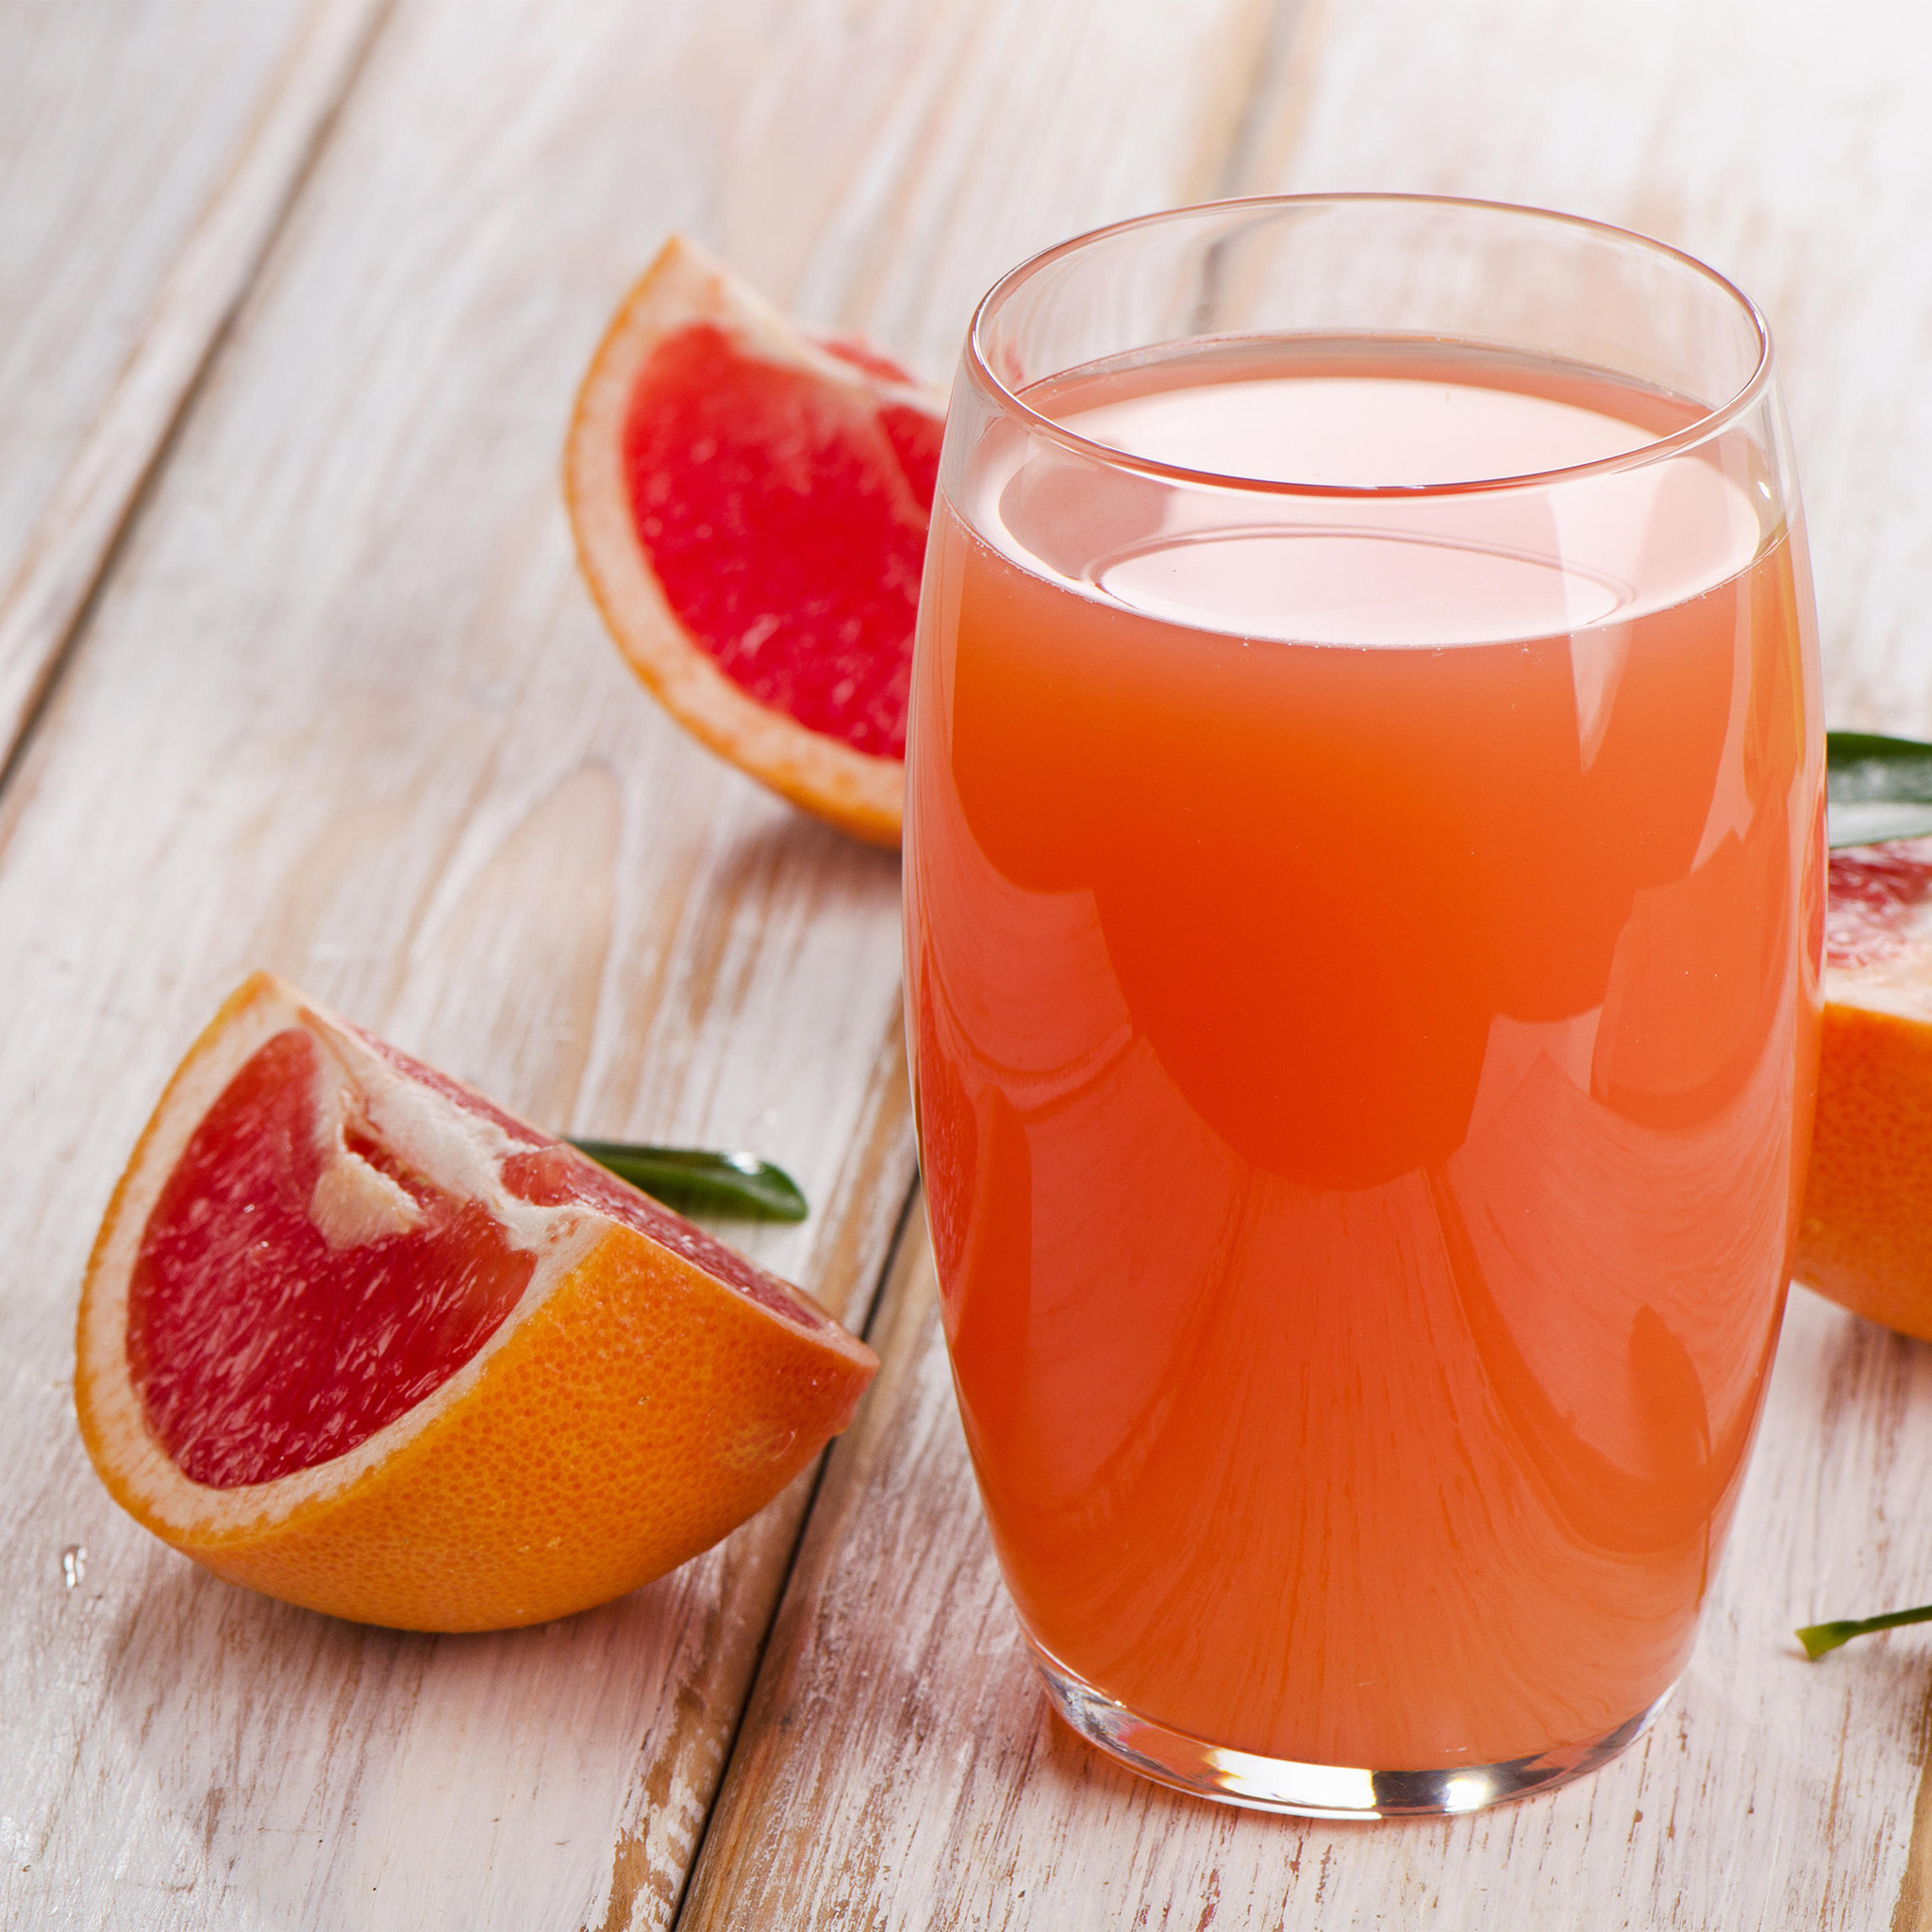 Grapefruit detox and Grapefruit juice are a healthy option to cleanse your body.